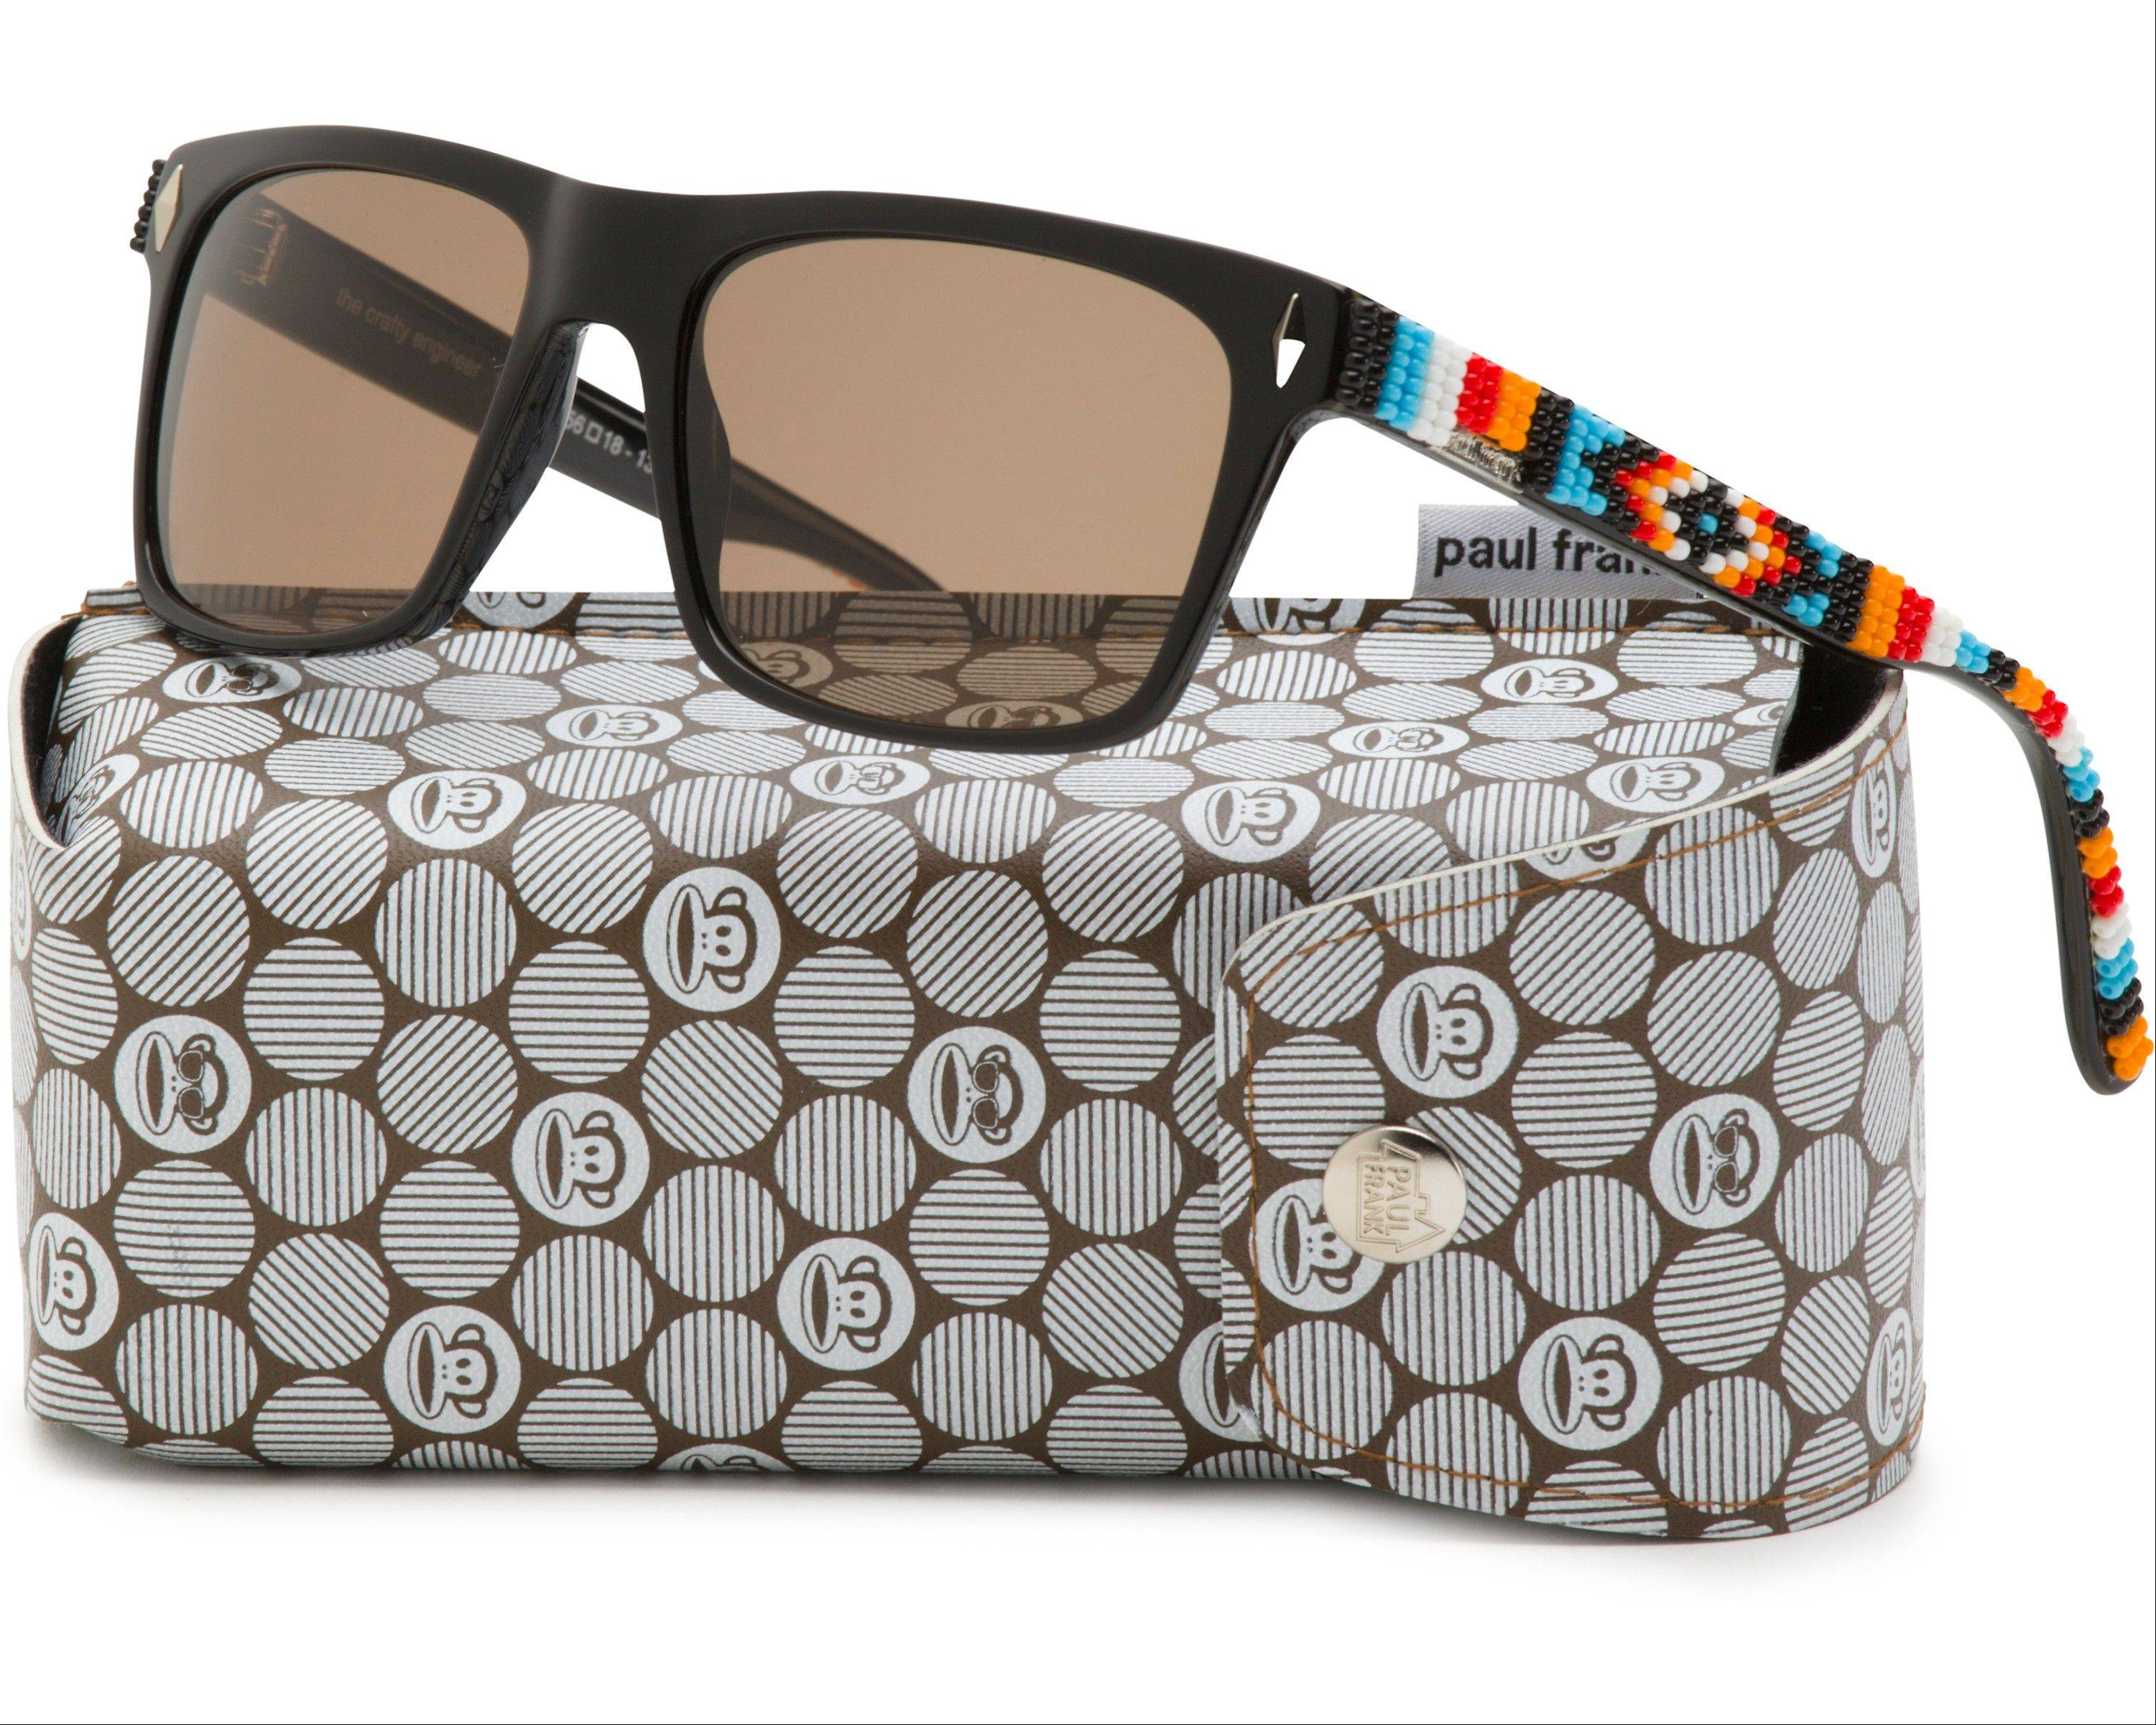 Beaded sunglasses designed by artist Candace Halcro, a member of the Plains Cree and Metis Aboriginal tribes.